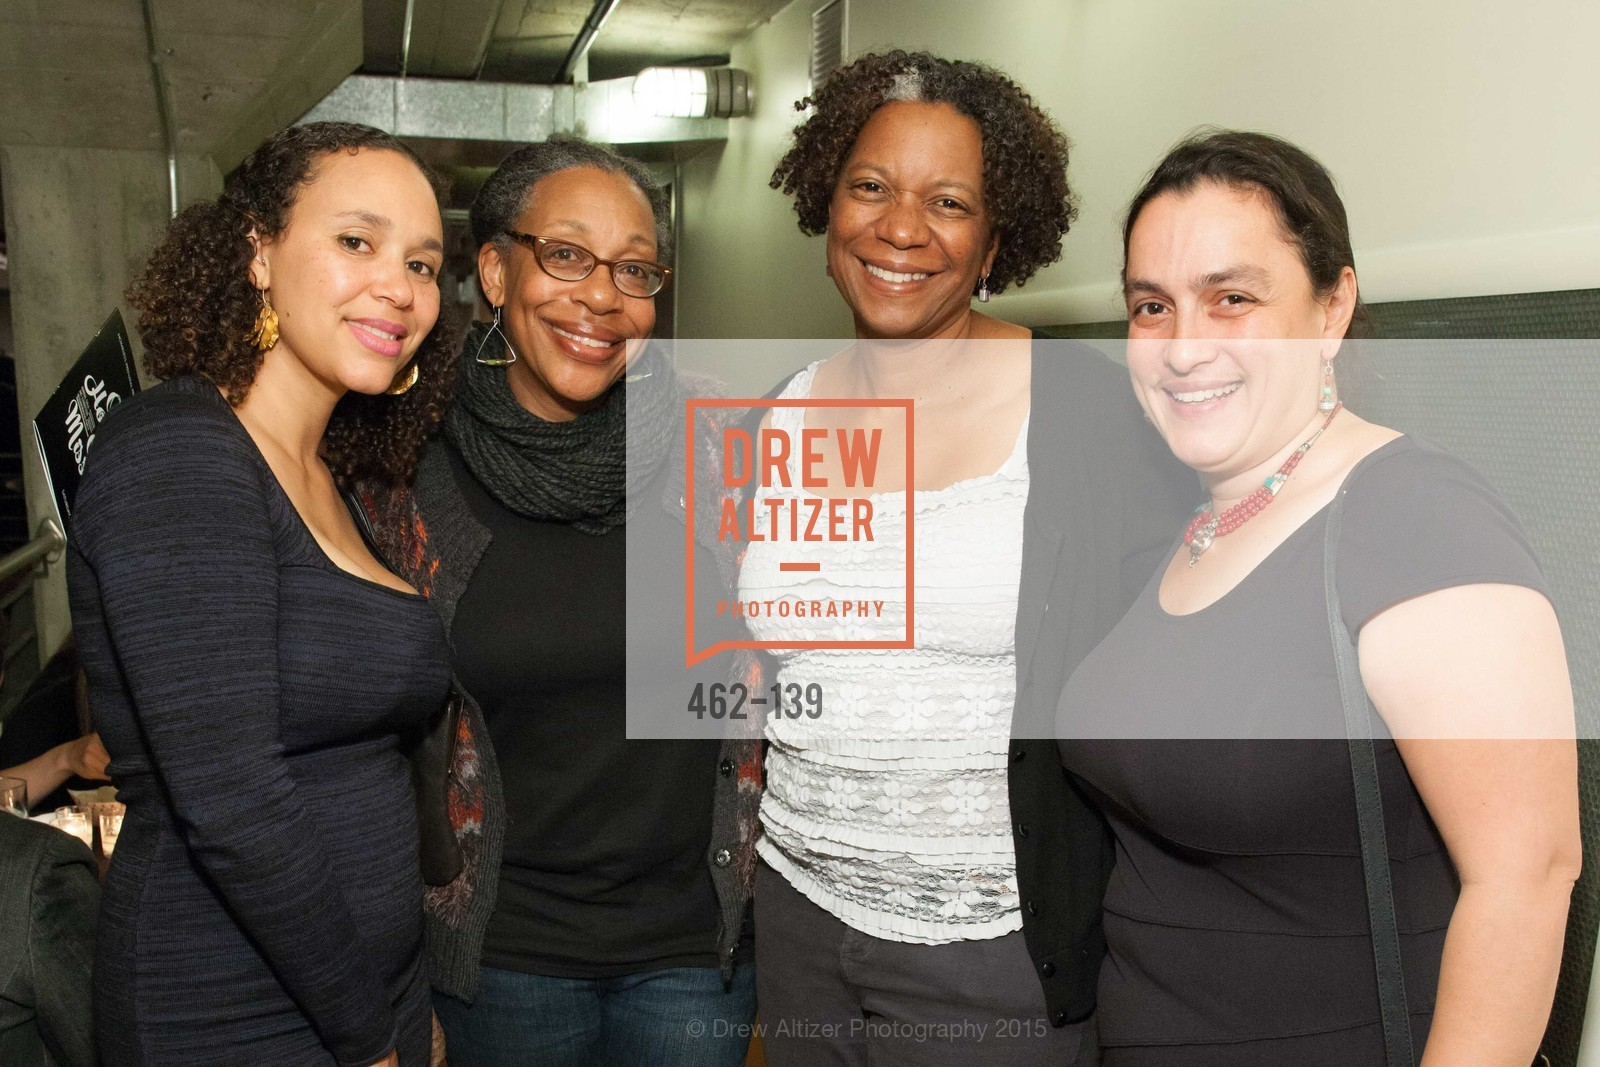 Nova Wilson, Connie Bryan, Cheryl Howell, Karisha Zanz, Homeless Prenatal Program Our House, Our Mission Gala, 2500 18th St, May 29th, 2015,Drew Altizer, Drew Altizer Photography, full-service agency, private events, San Francisco photographer, photographer california